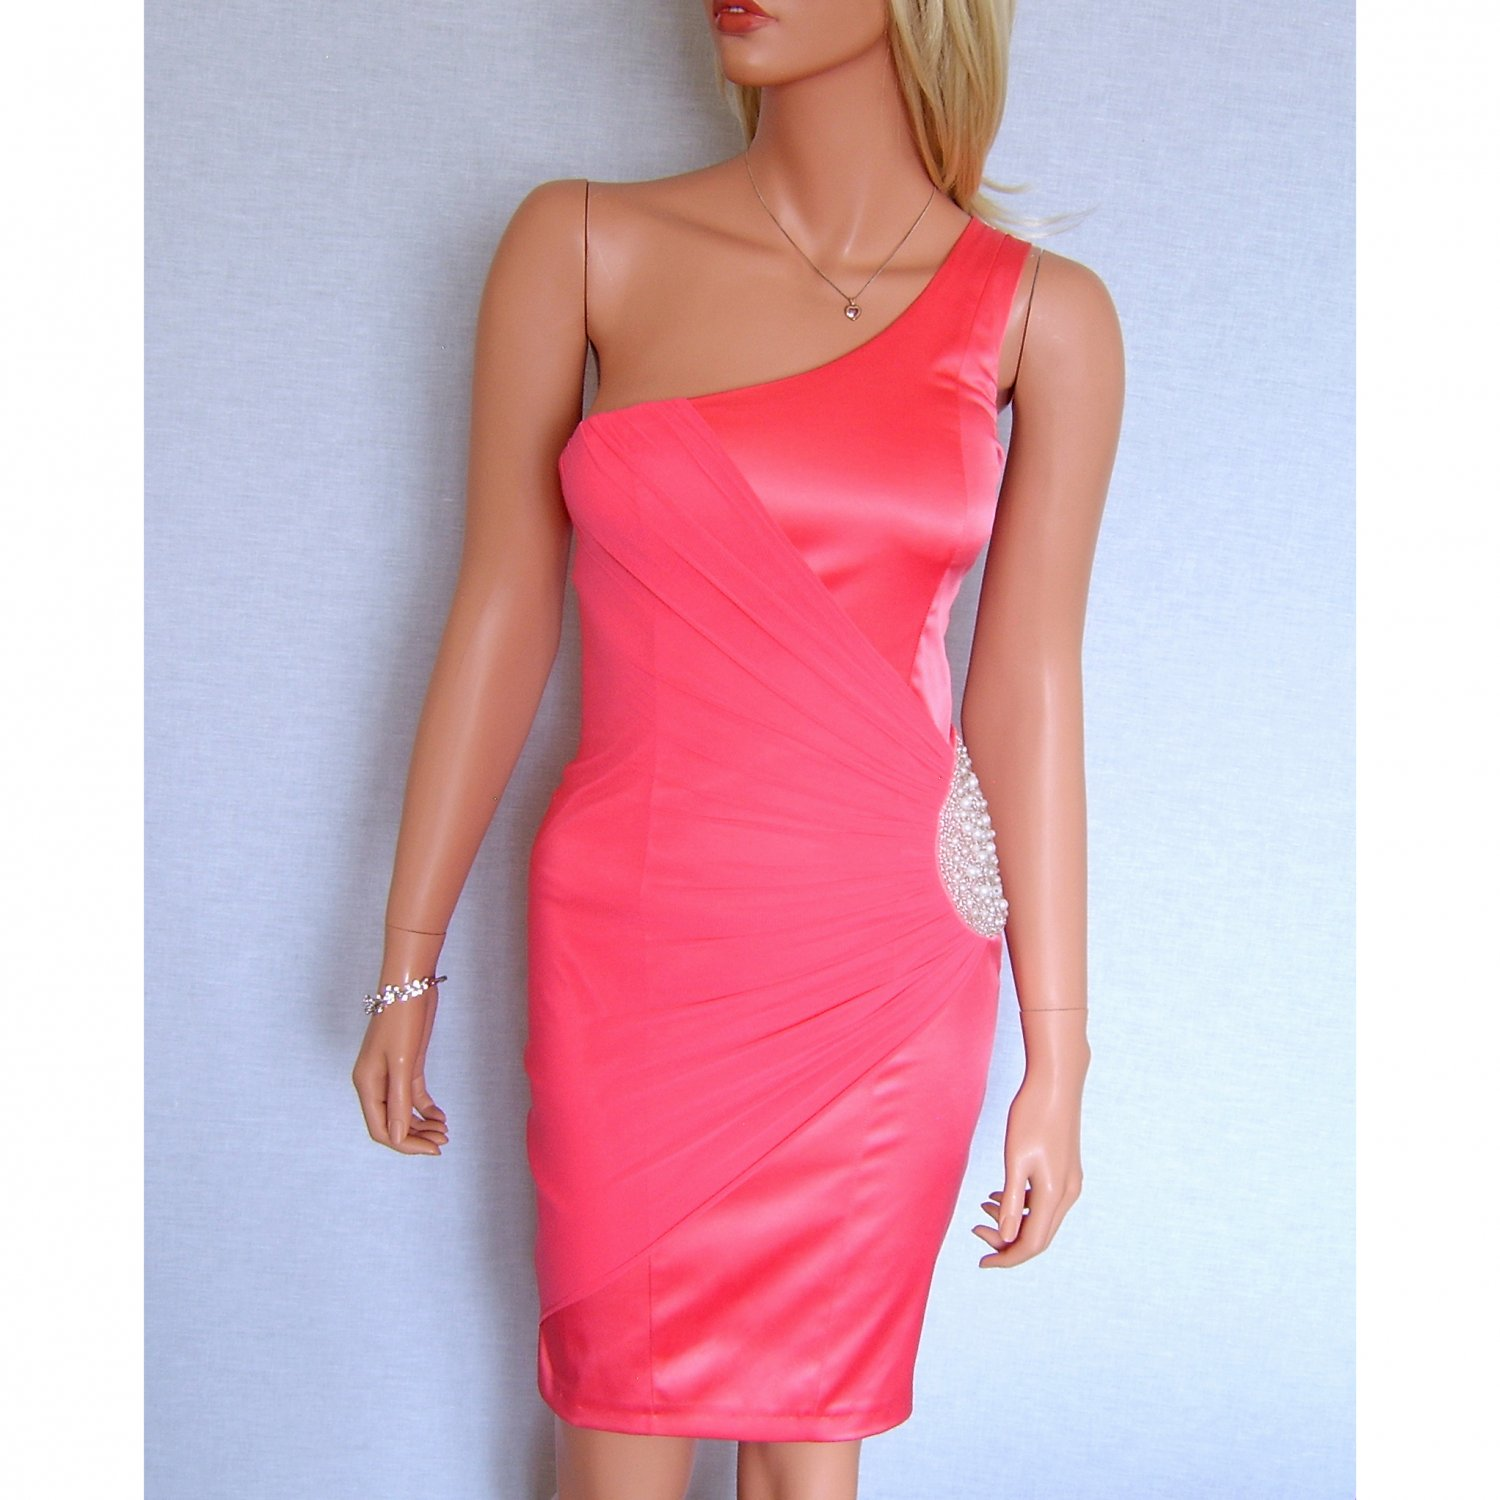 ELISE RYAN TOPSHOP CORAL PEARL BEADED EVENING BODYCON MINI COCKTAIL CLUB PARTY PROM DRESS UK 8, US 4